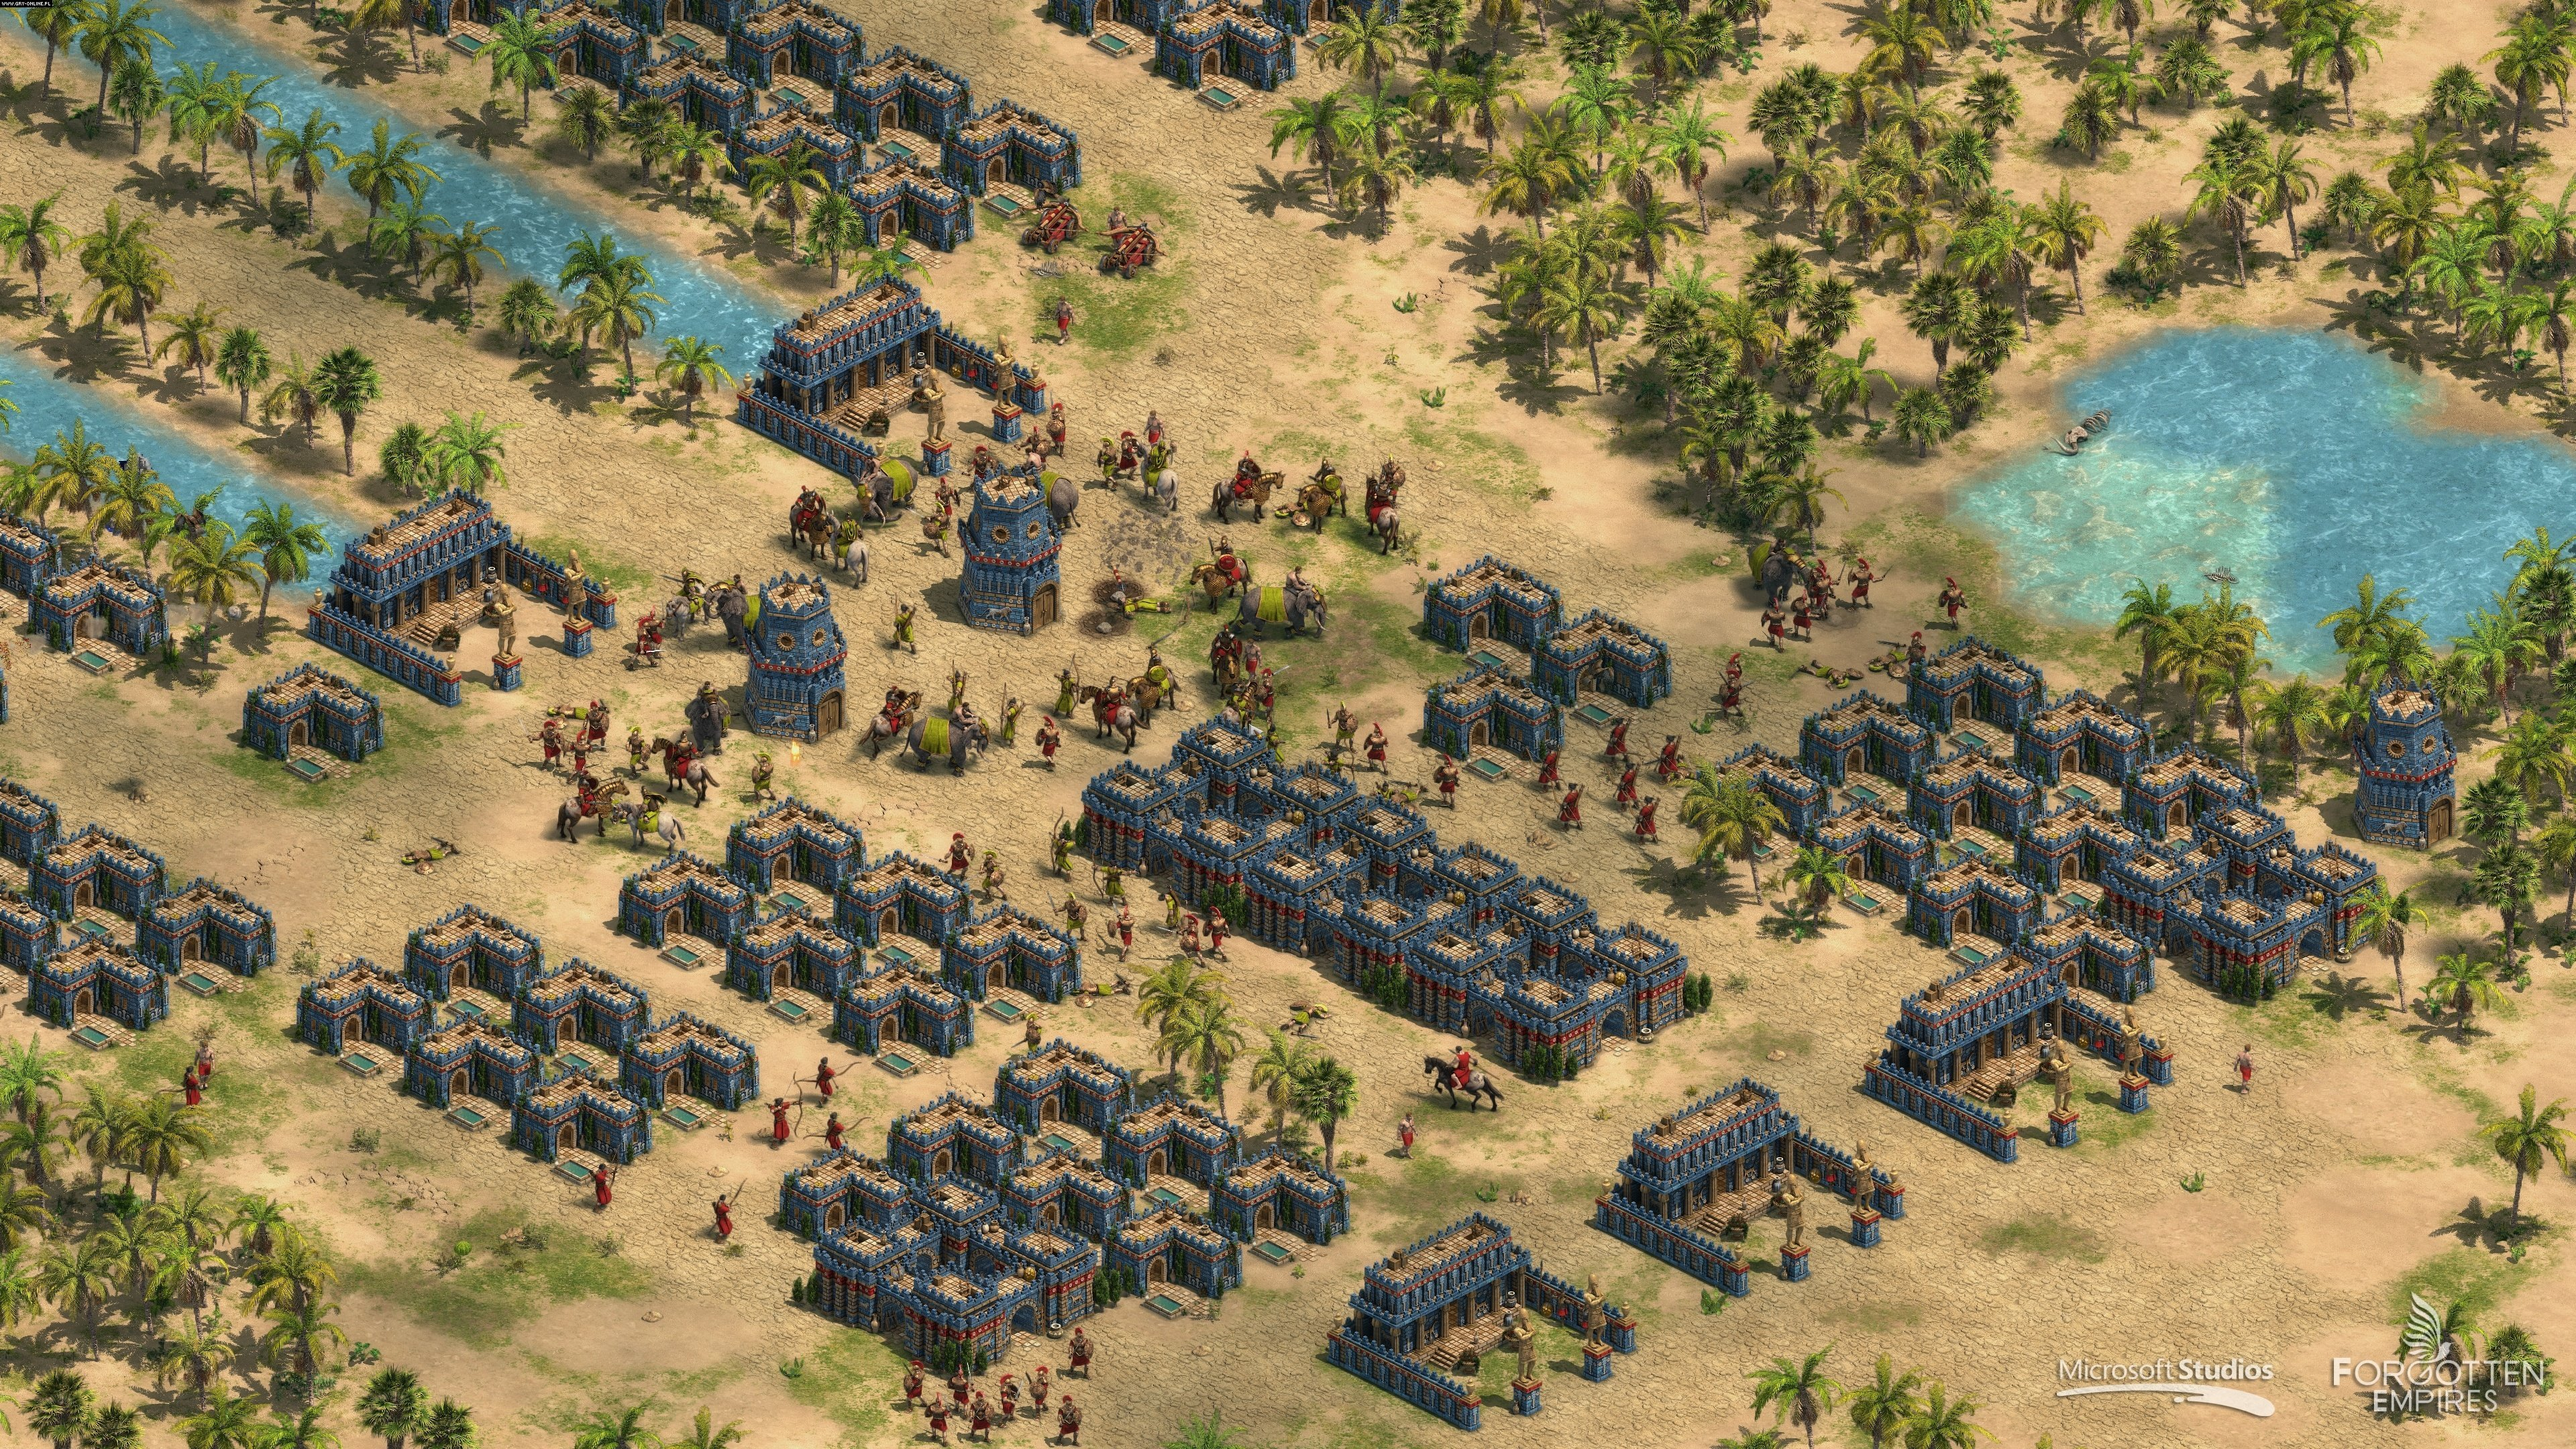 Age of Empires: Definitive Edition - screenshots gallery